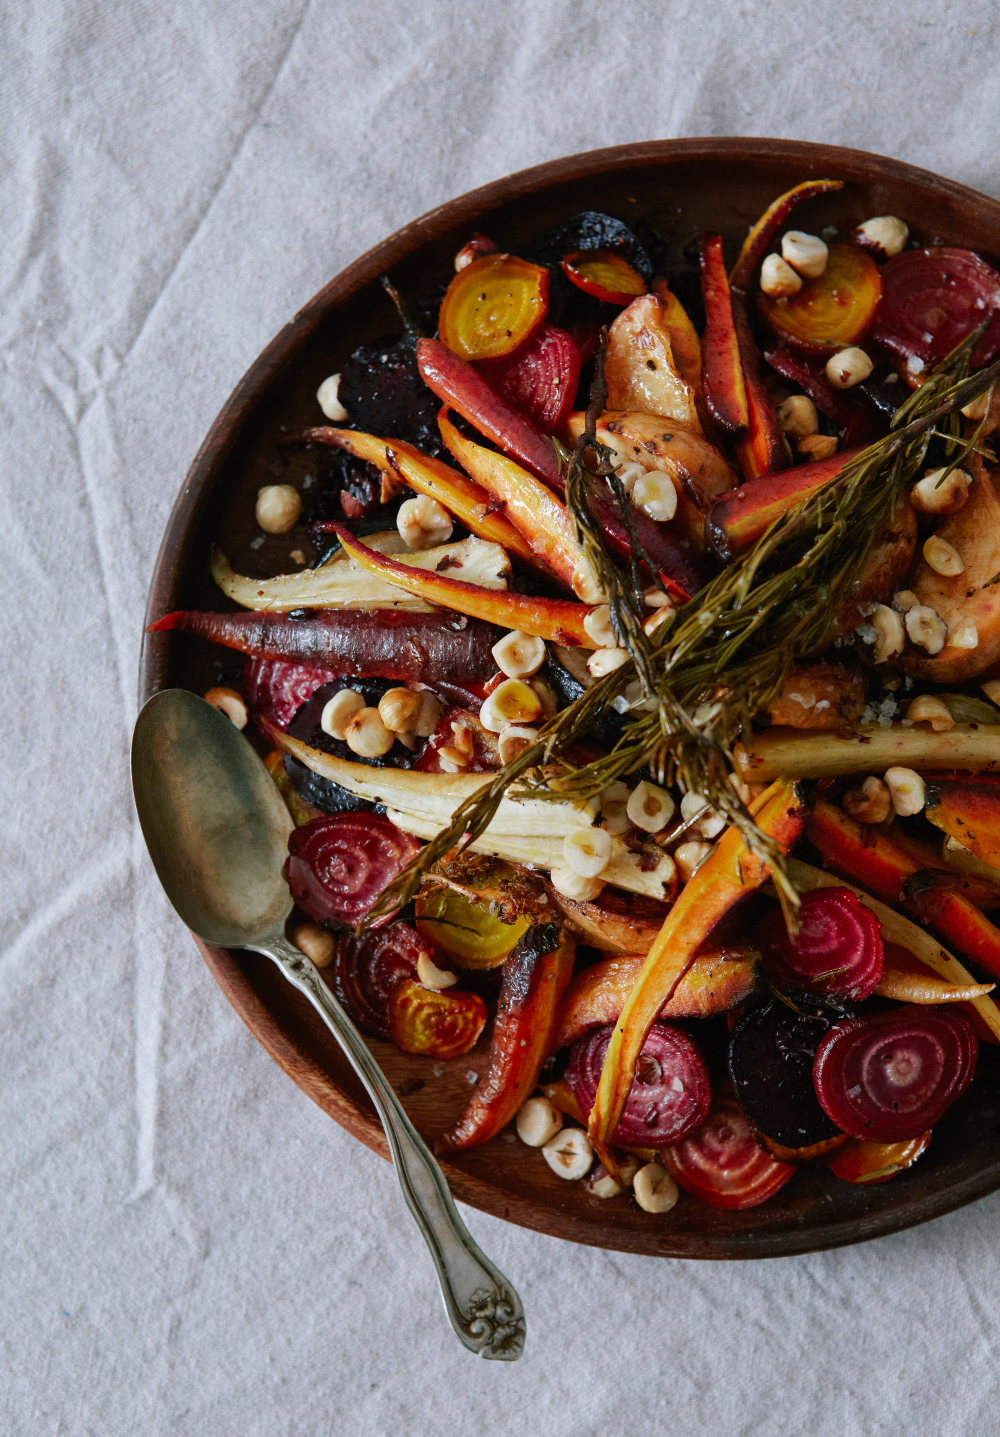 Autumnal Roasted Root vegetables with Orange Vinaigrette